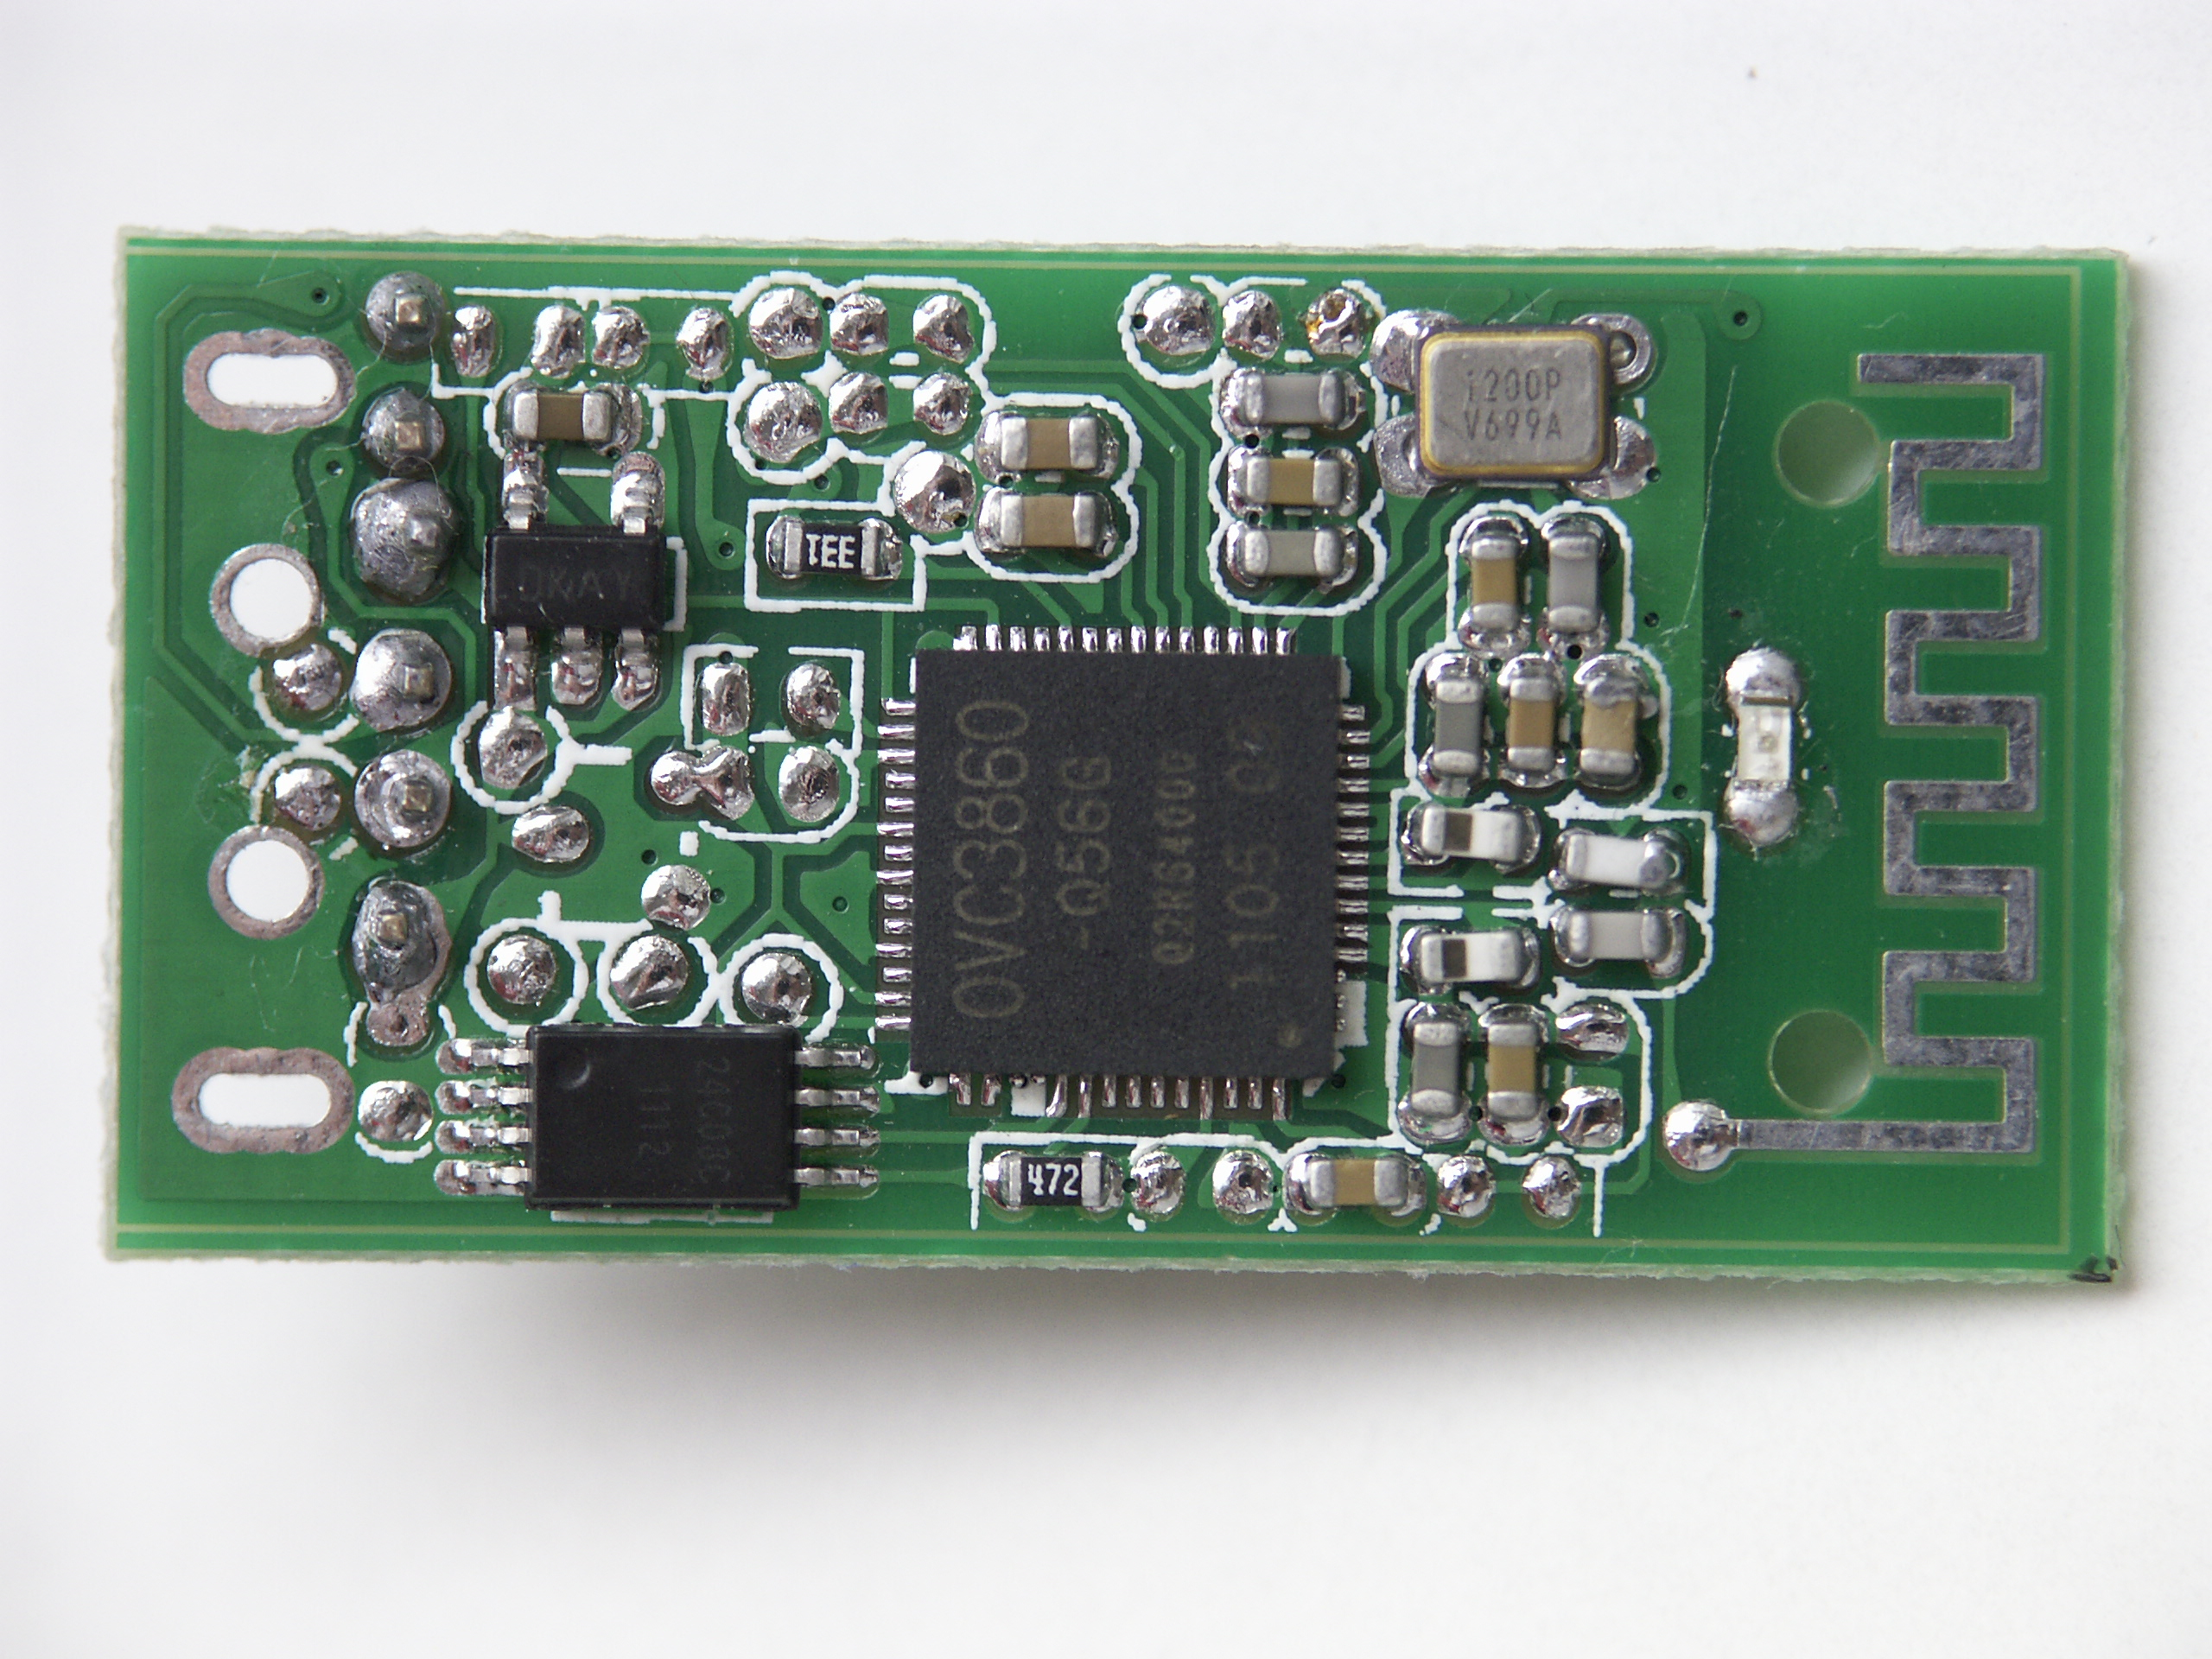 A2dp Bluetooth Audio Receiver Enjoy Bt Au01 Power Supply Circuit For Low Noise Top View Of Board